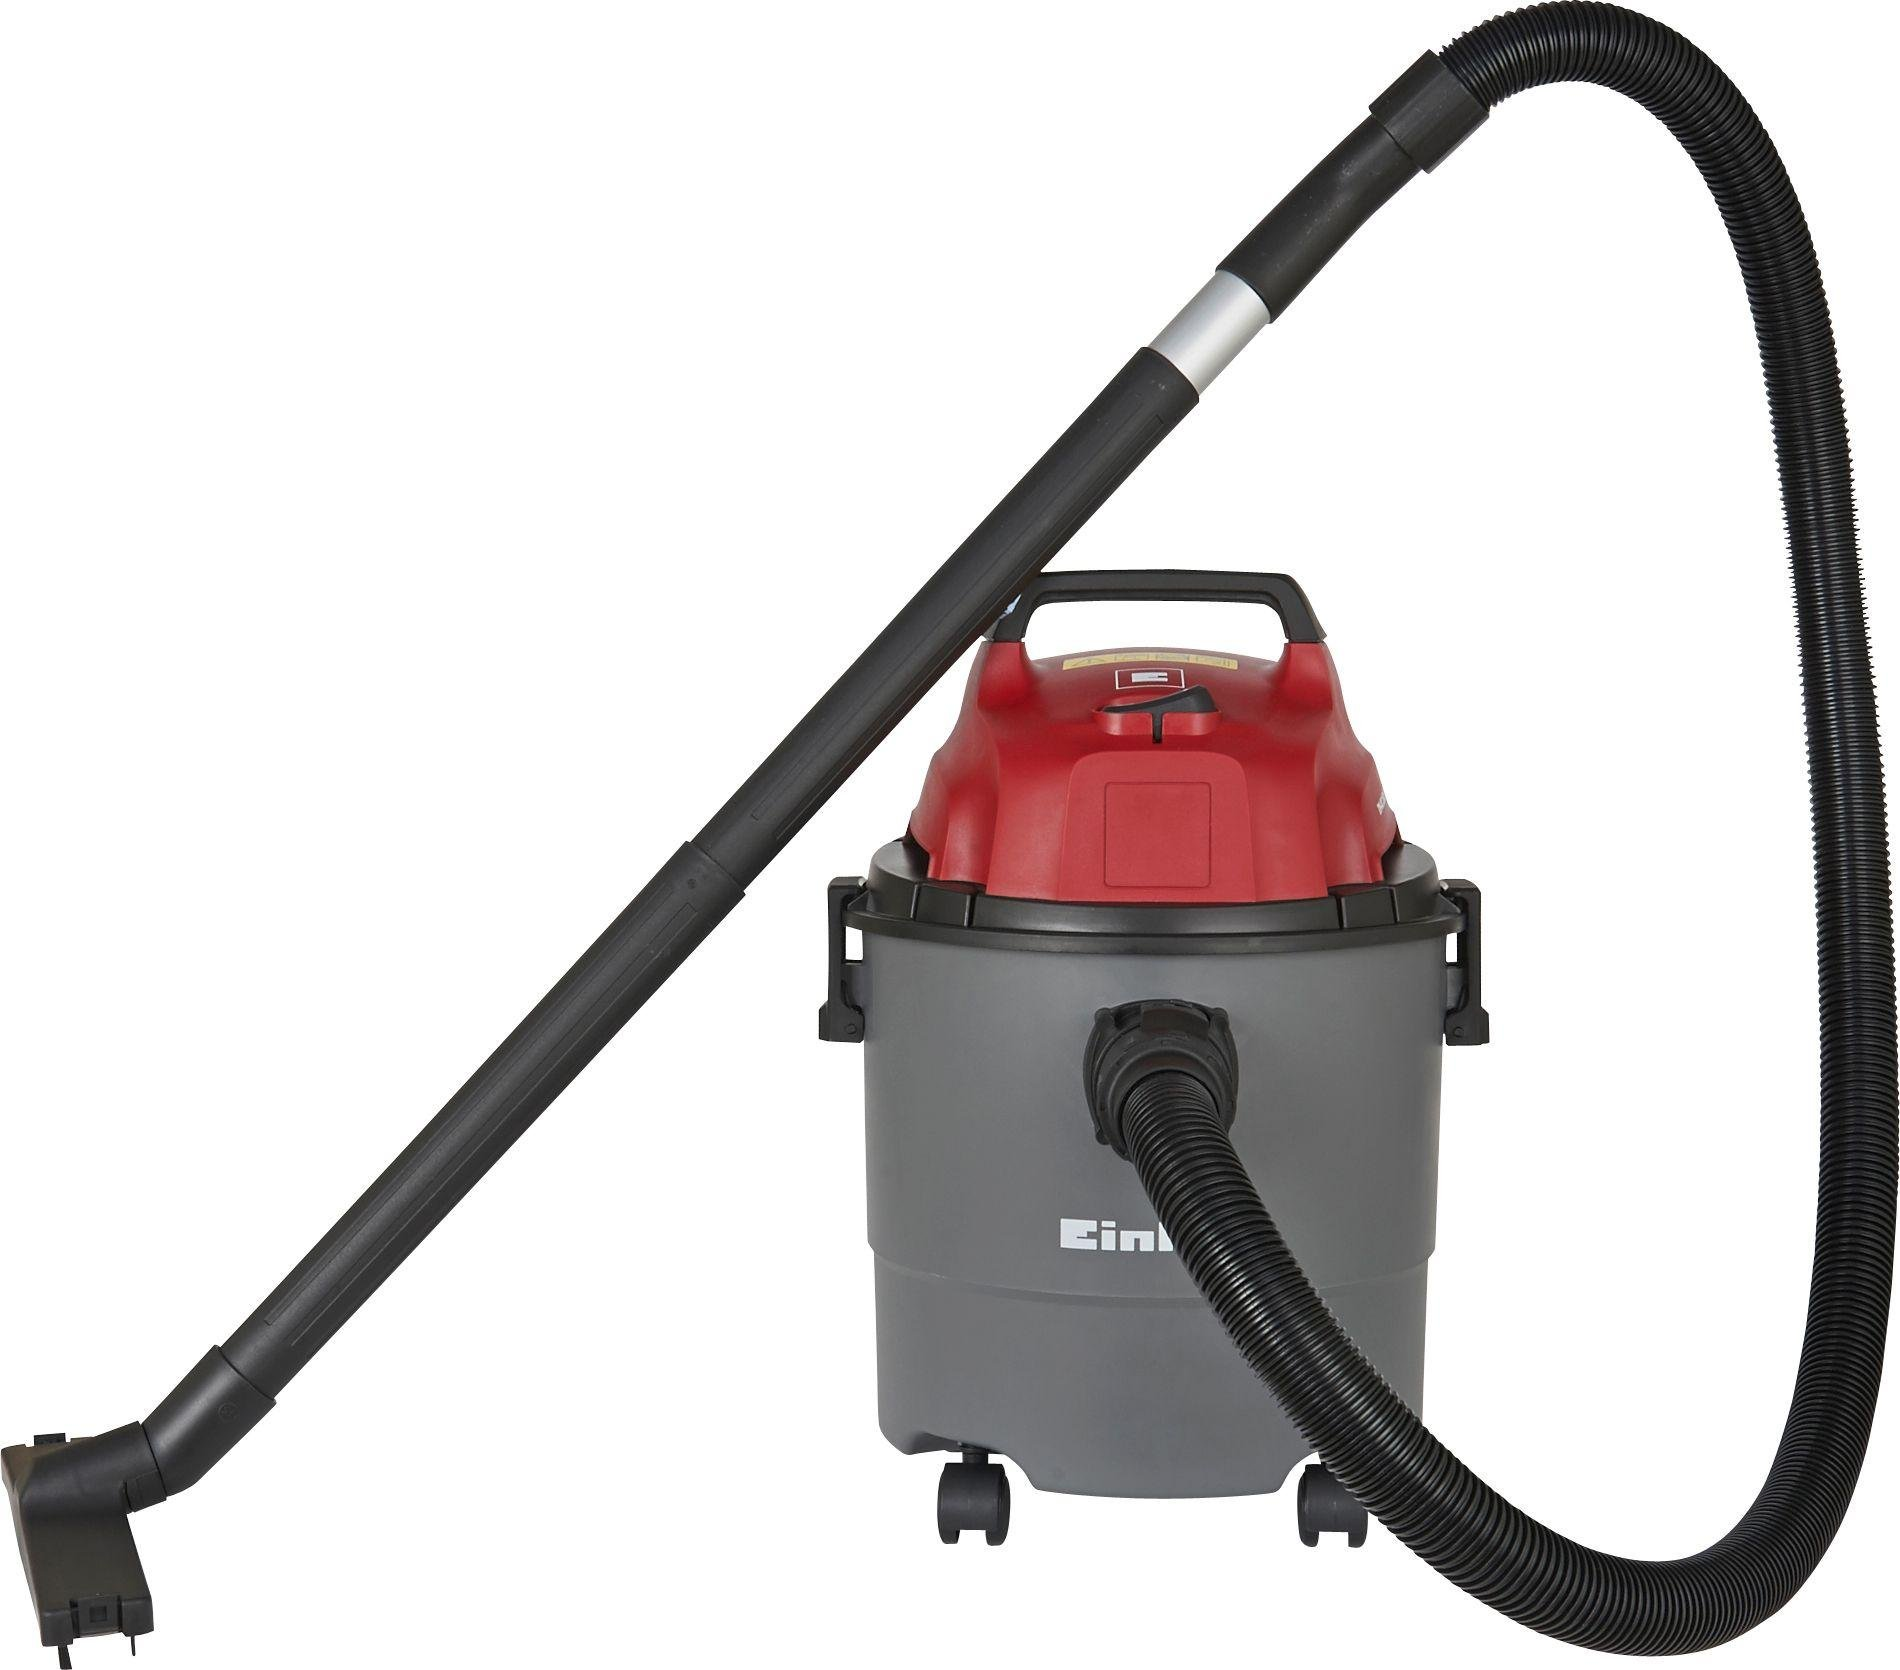 Image of Einhell - 15 Litre - Wet and Dry Vacuum - 1250W